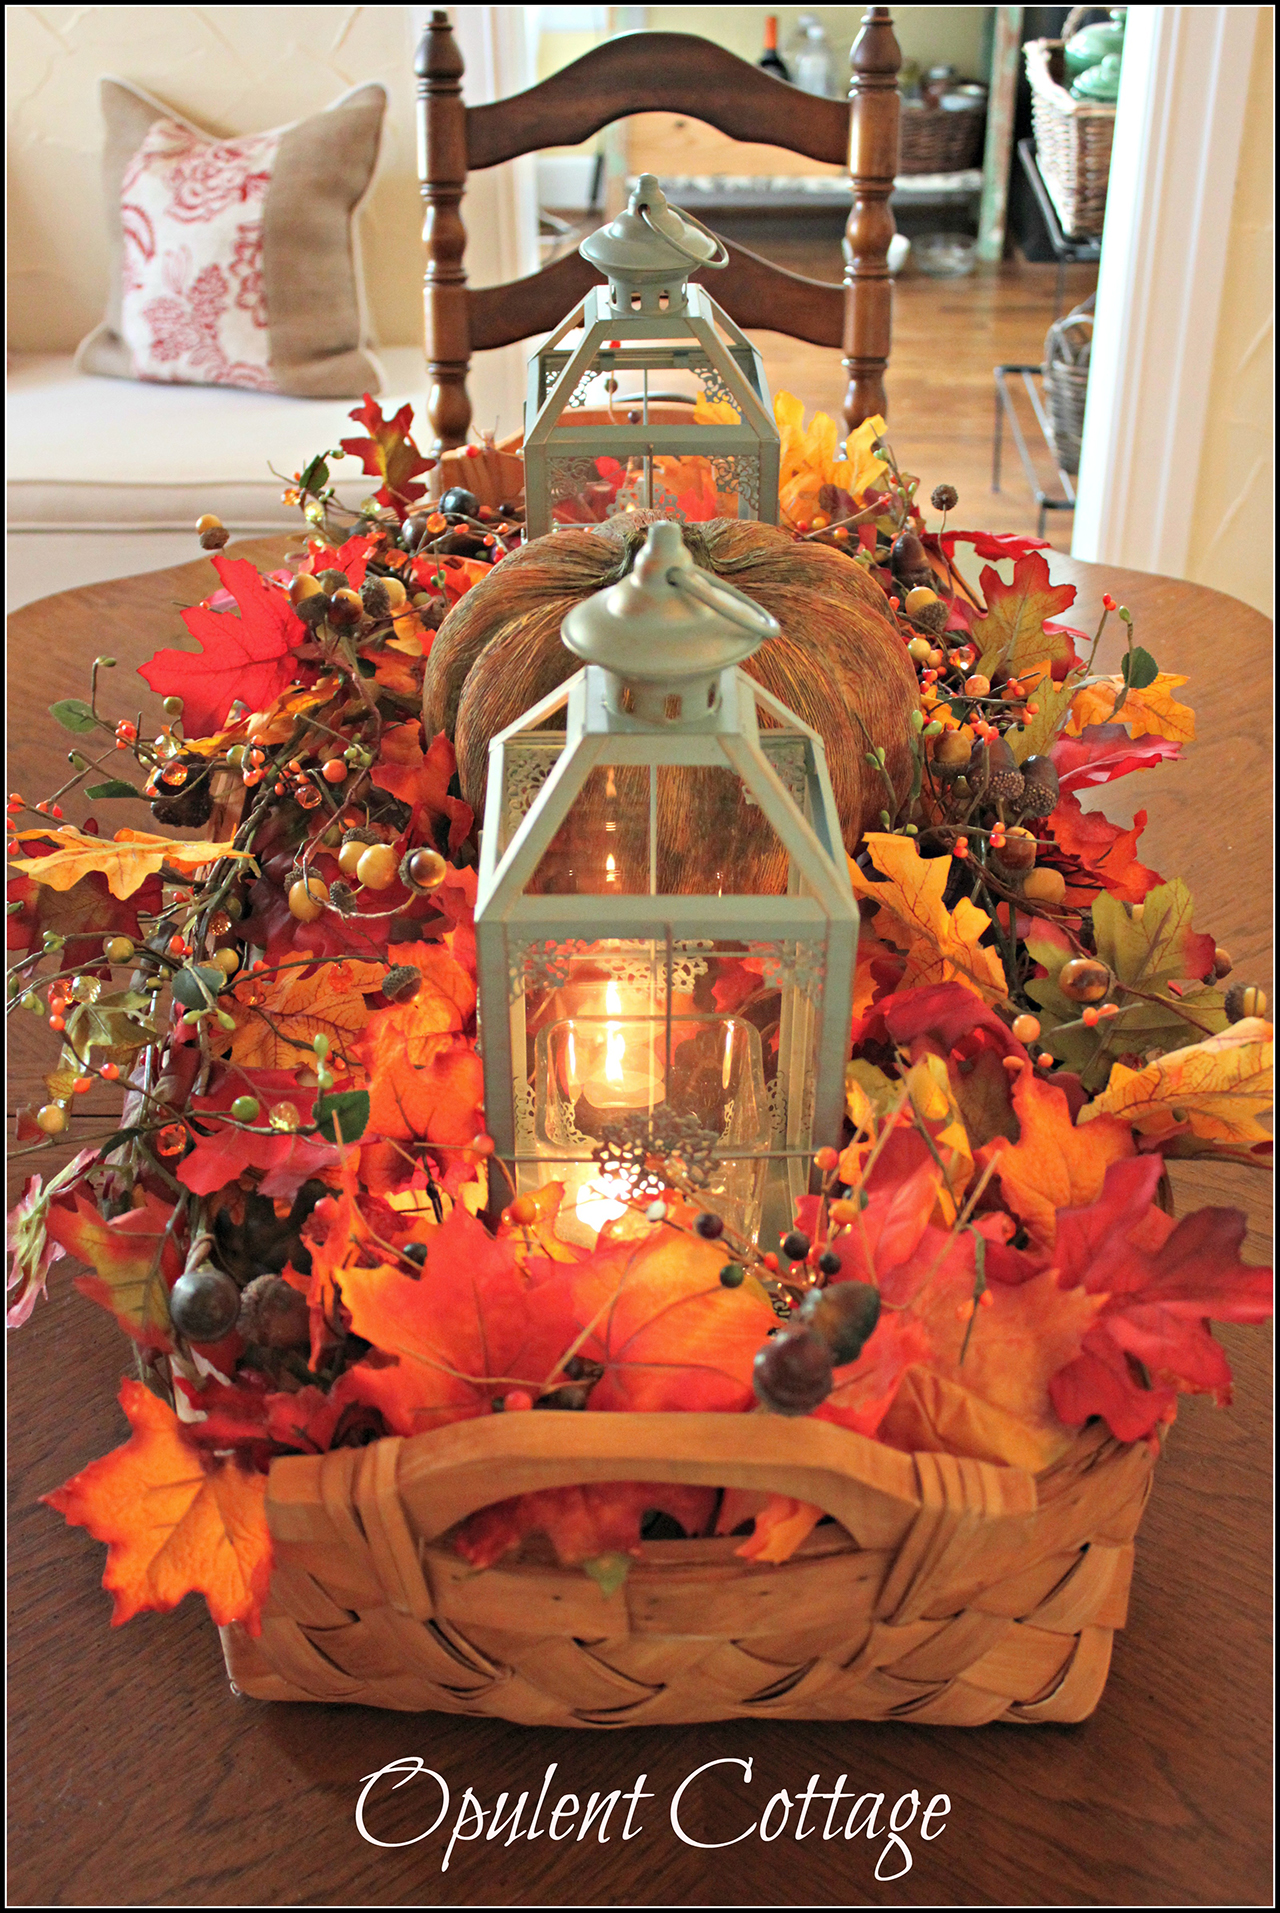 Best 27 Best Diy Fall Centerpiece Ideas And Decorations For 2019 This Month